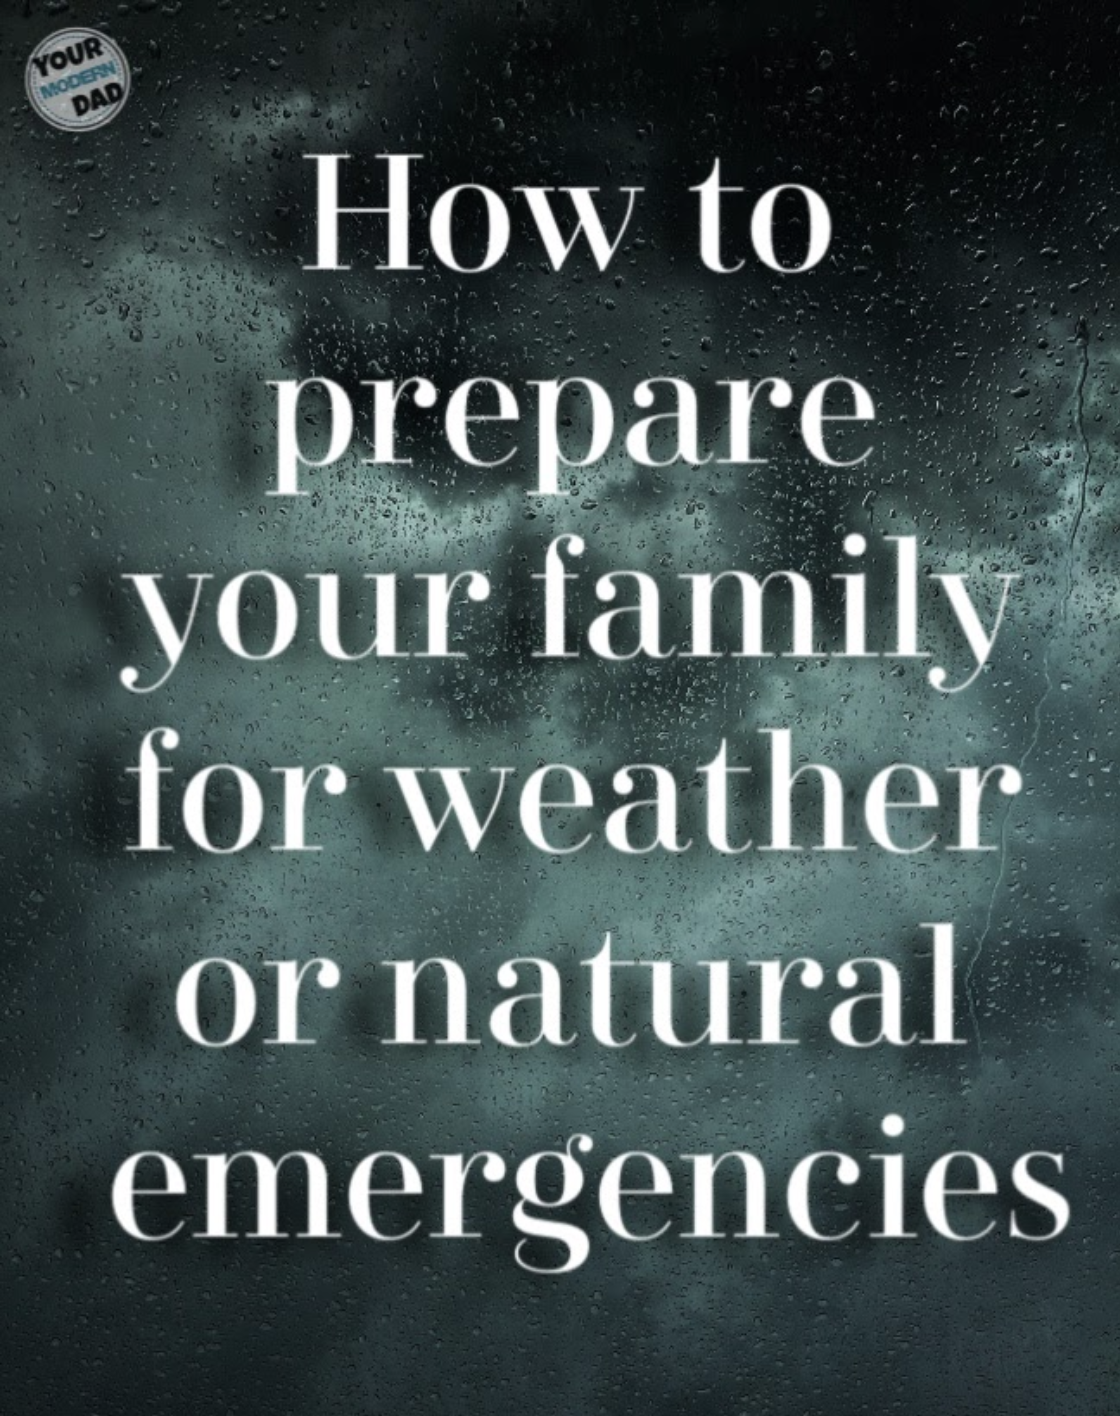 HOW TO BE PREPARED FOR WEATHER OR NATURAL EMERGENCIES